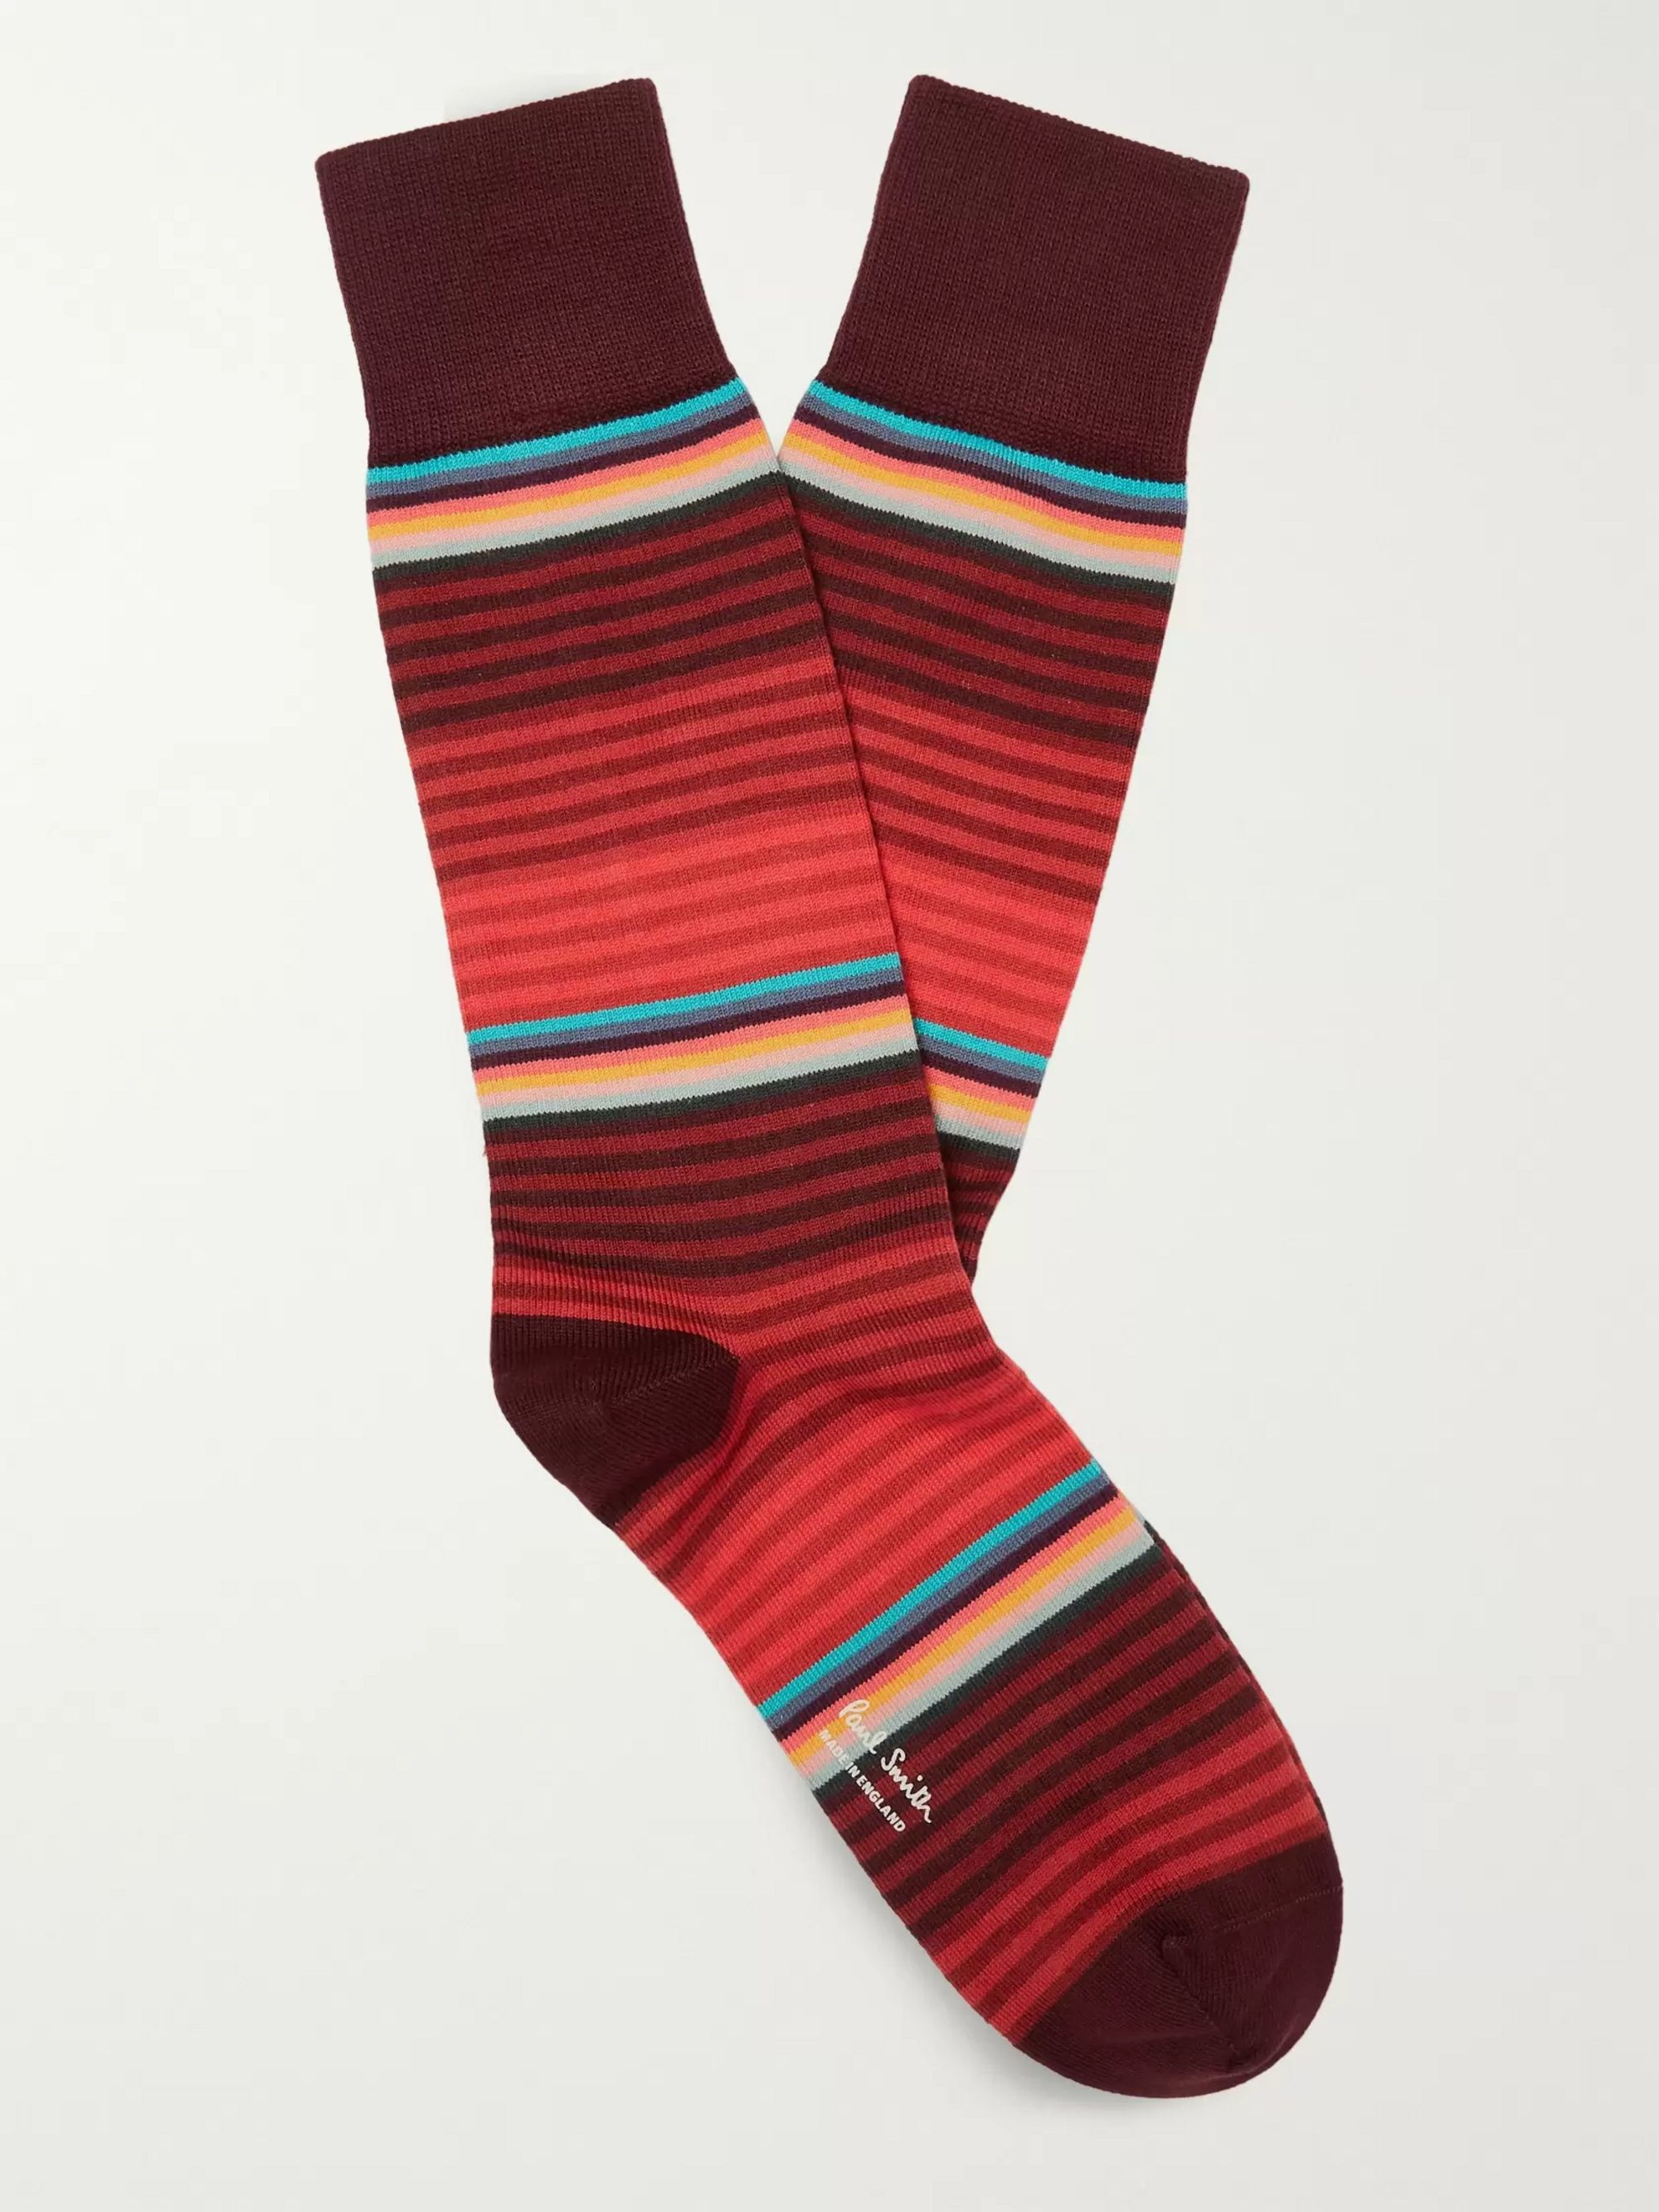 Striped Stretch Cotton Blend Socks by Paul Smith